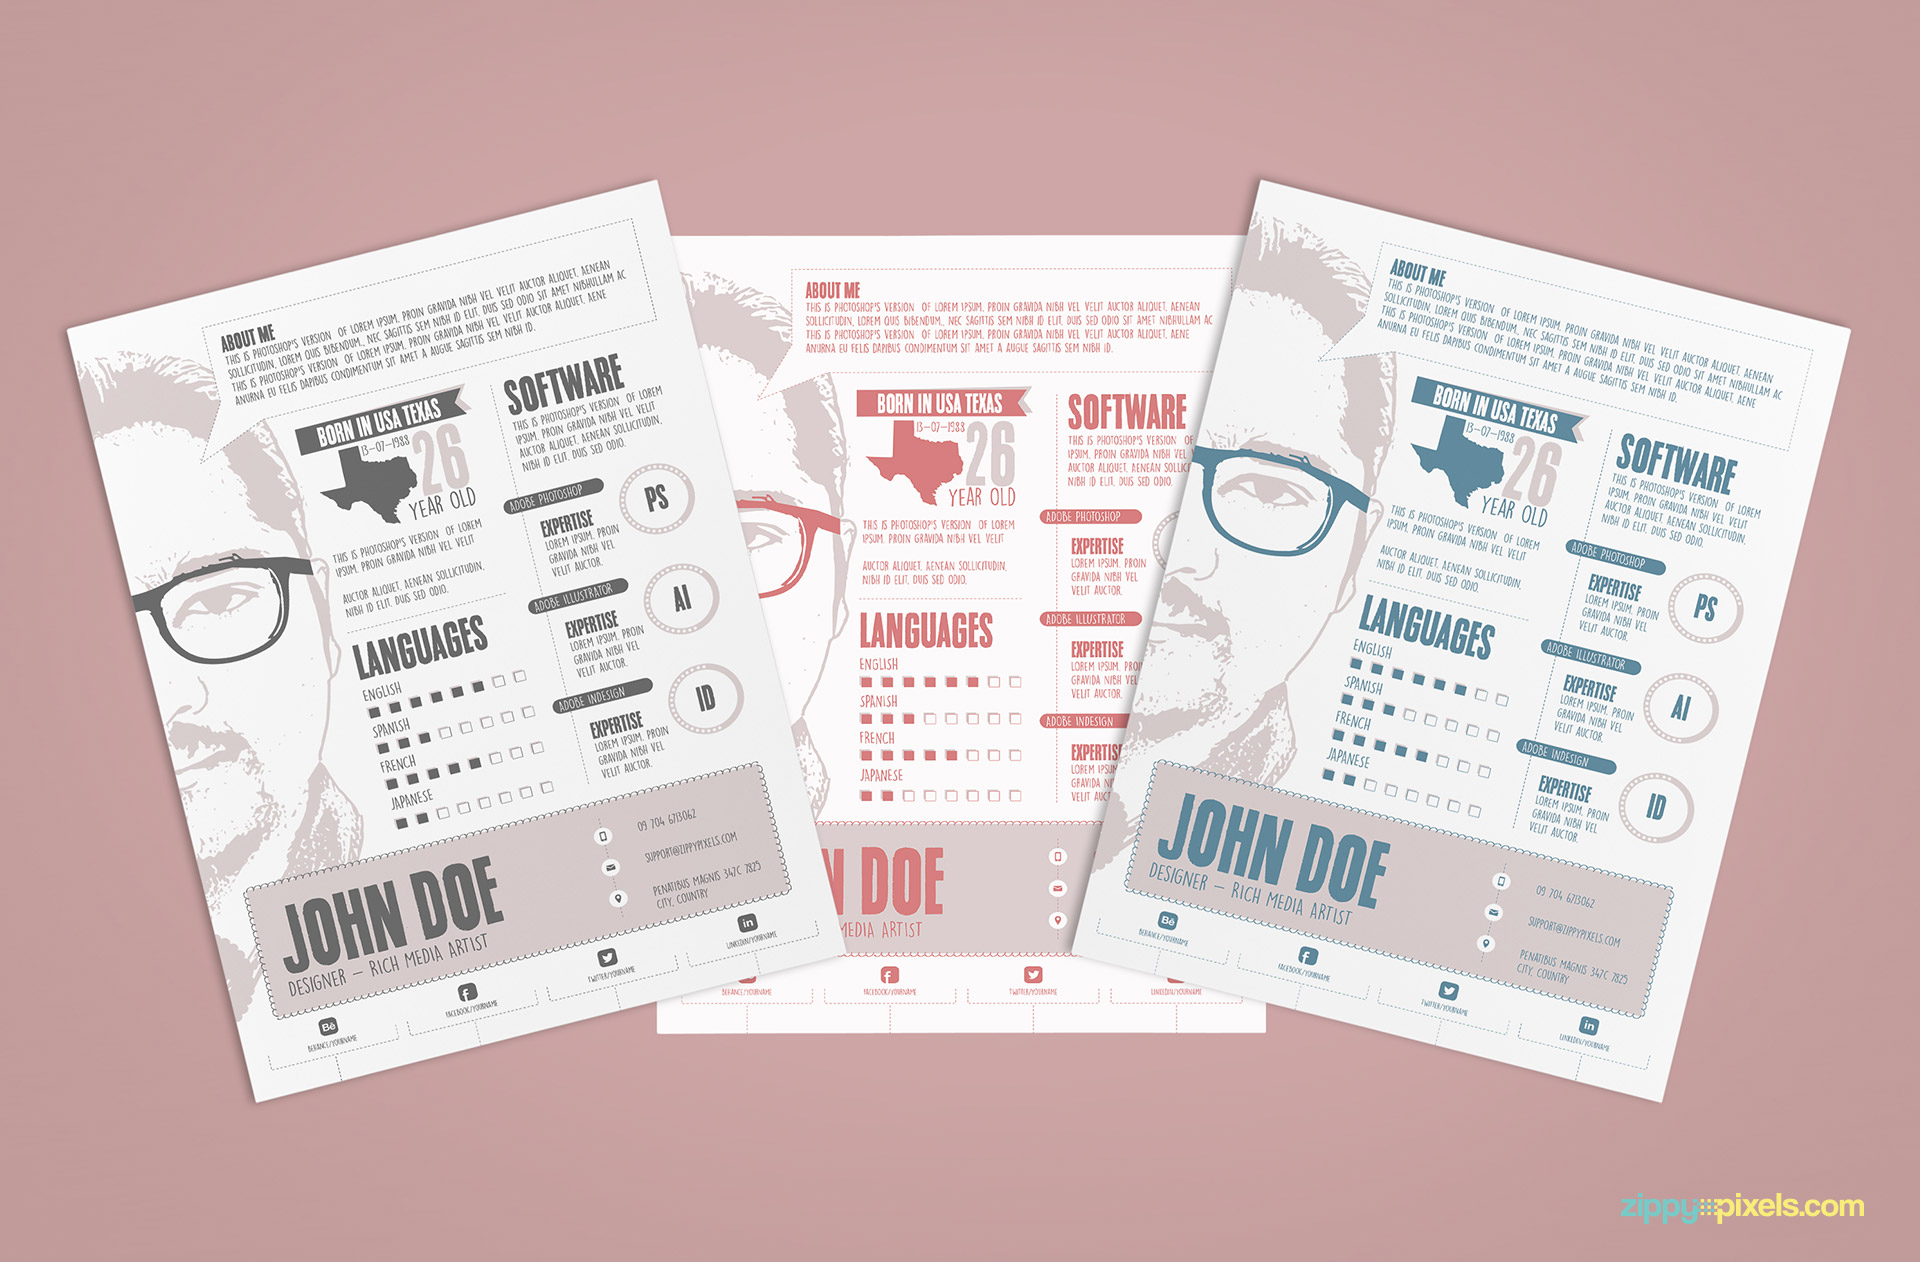 Graphic Designer Resume Template - Psd & Ai | Zippypixels